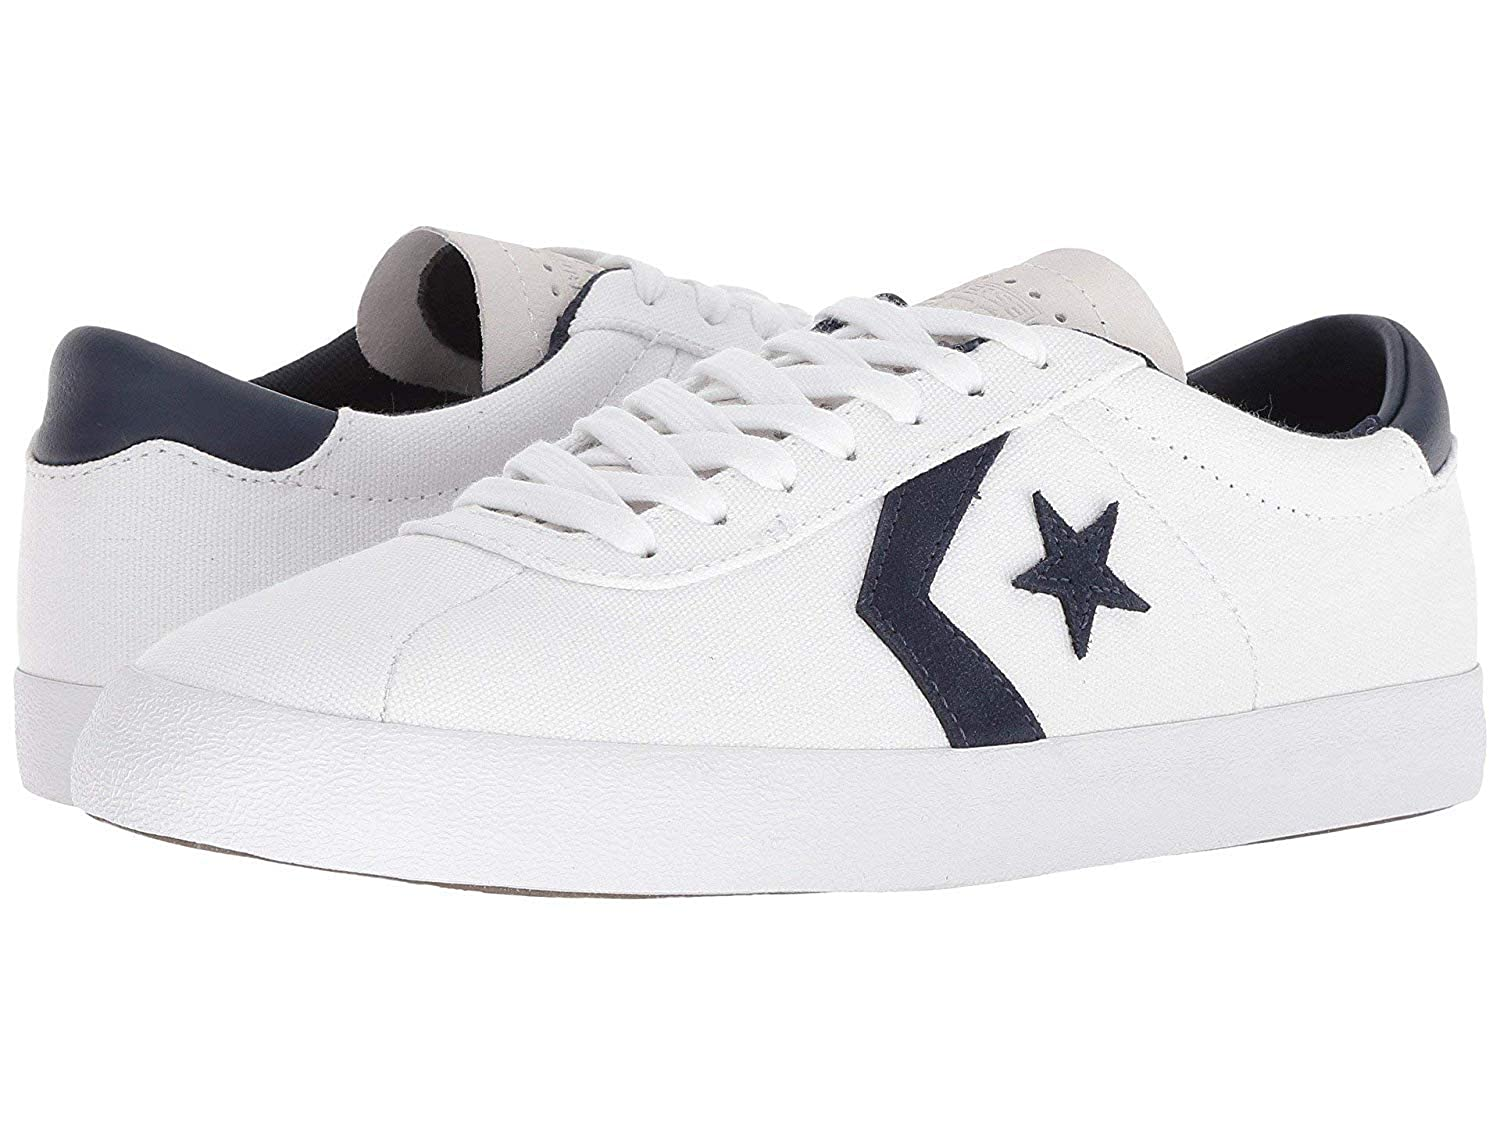 c03d5b420c0e29 Converse Women s Breakpoint Pro Ox Ankle-high Canvas Fashion Sneaker White  White Obsidian 5 D US  Buy Online at Low Prices in India - Amazon.in